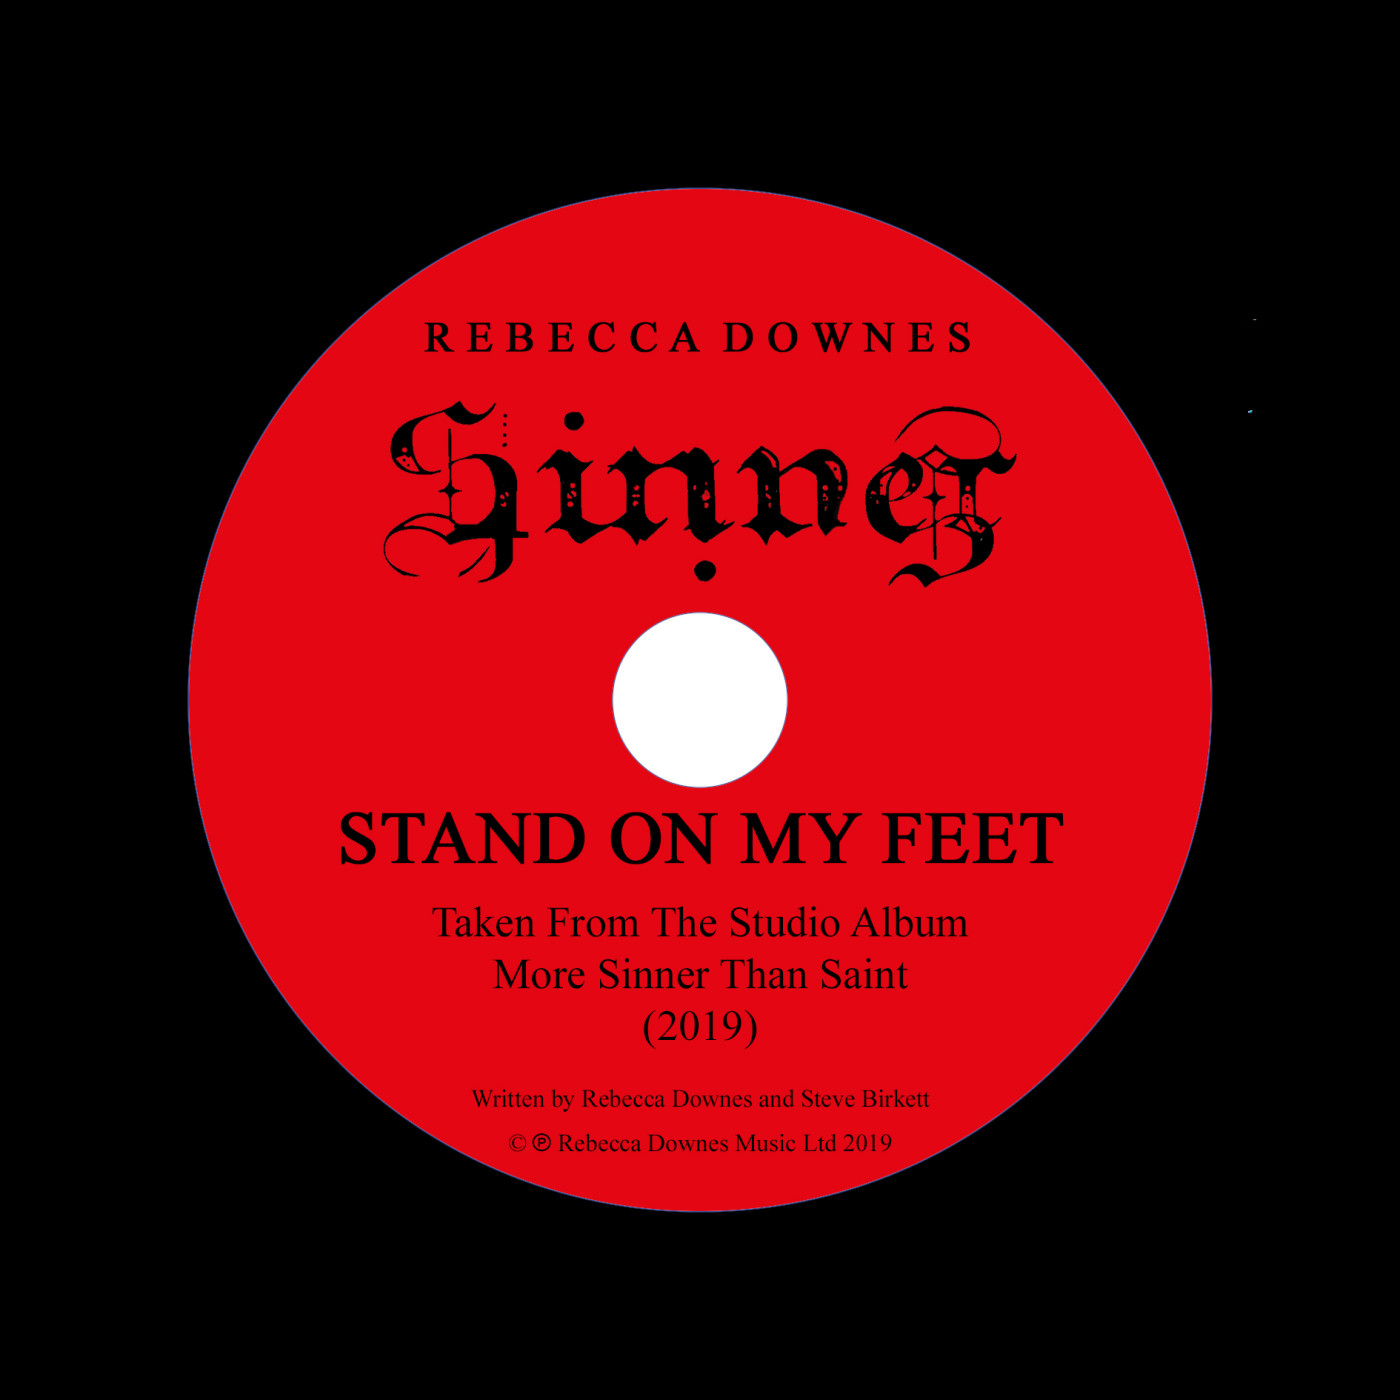 Stand On My Feet - The Journey Of A Song